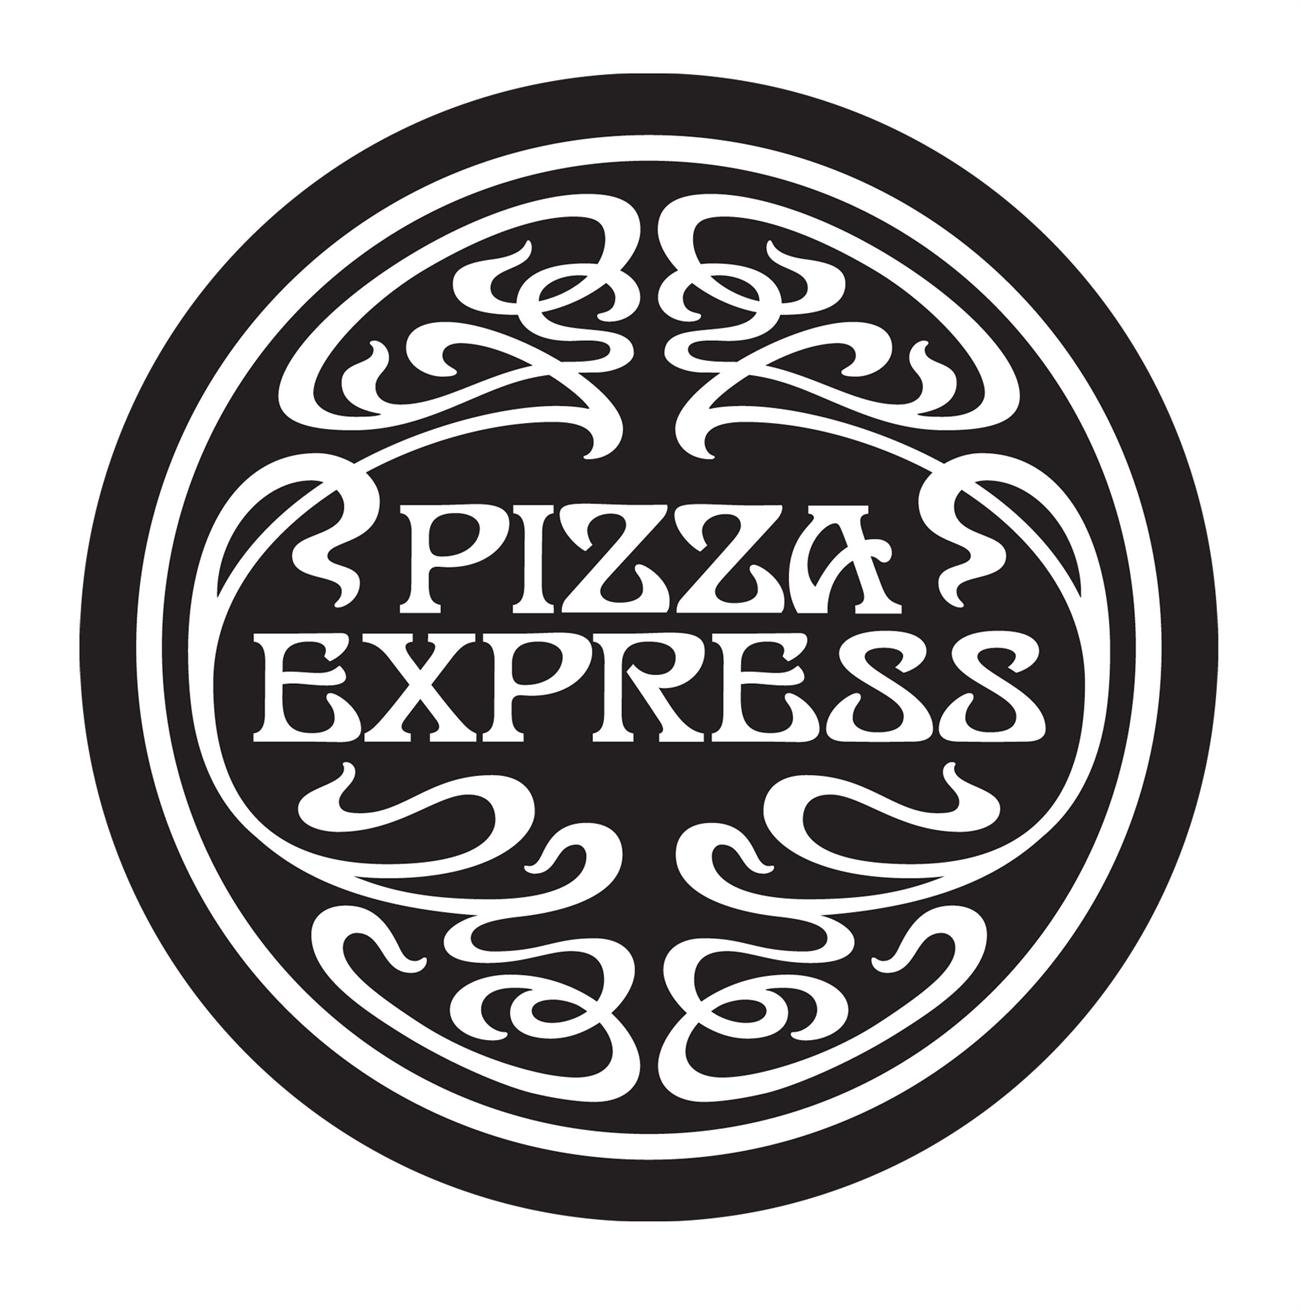 Pizza Express, the Rotunda, Kingston